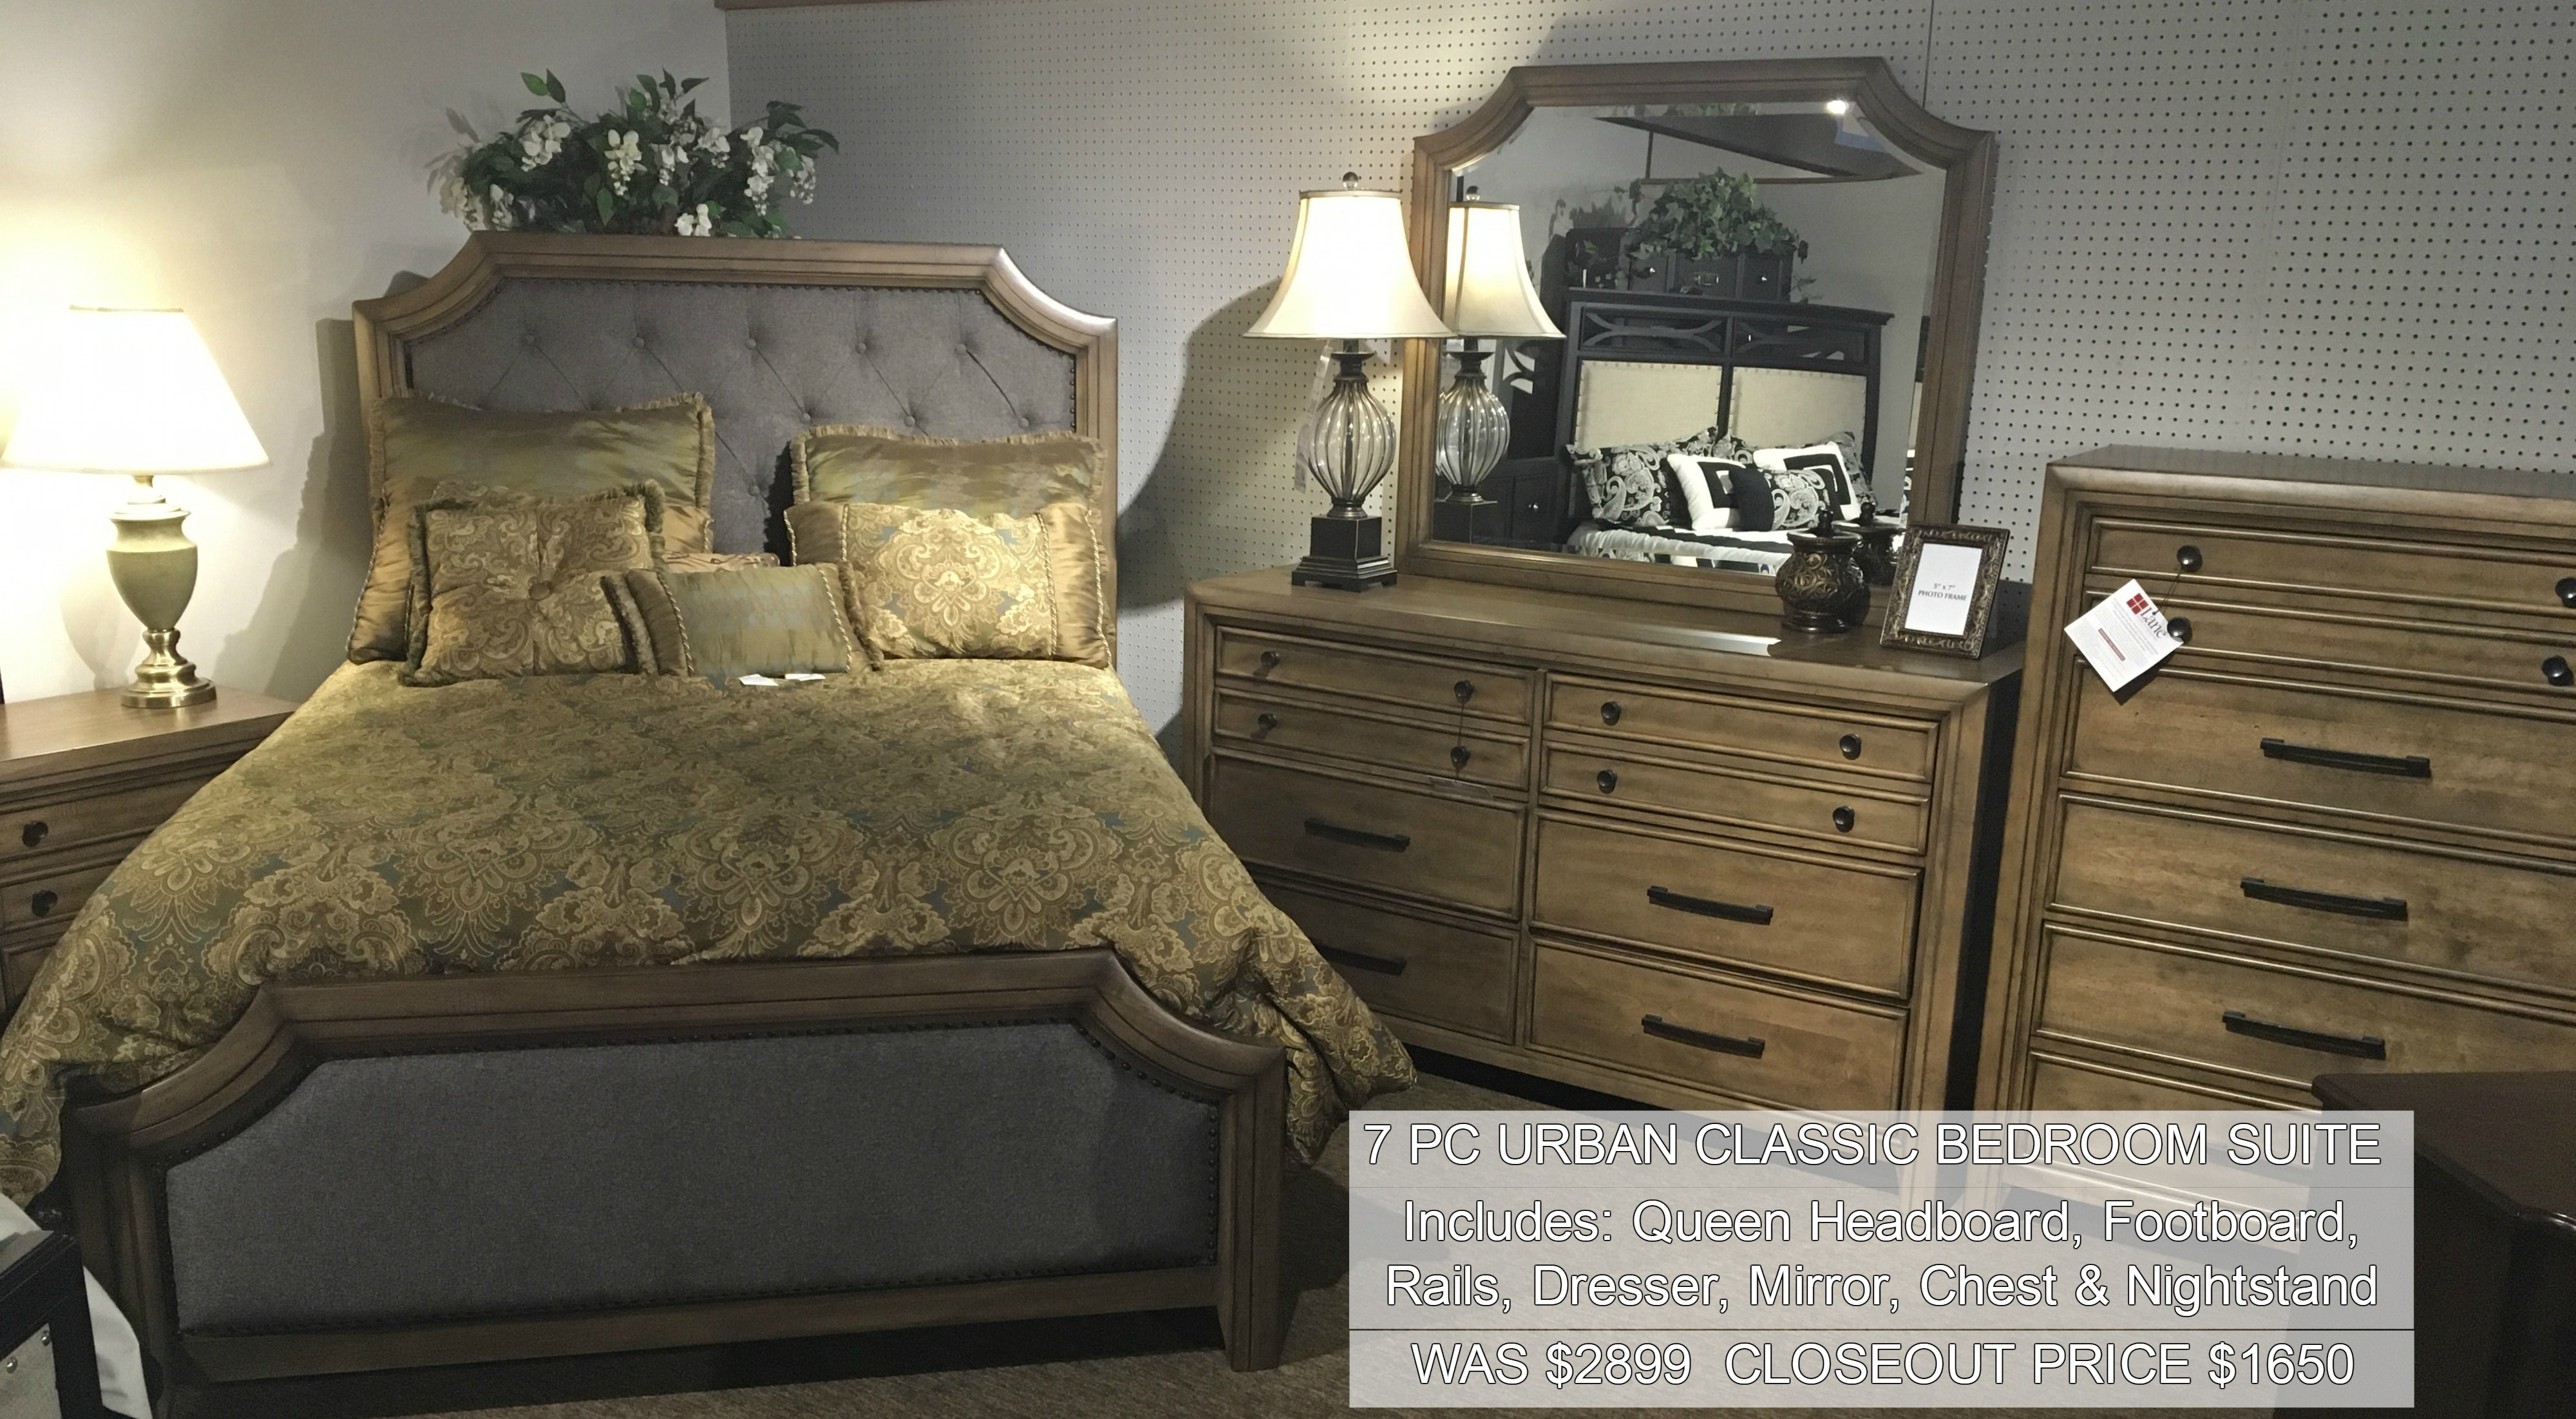 7PC Urban Classic Bedroom Suite Only $1650